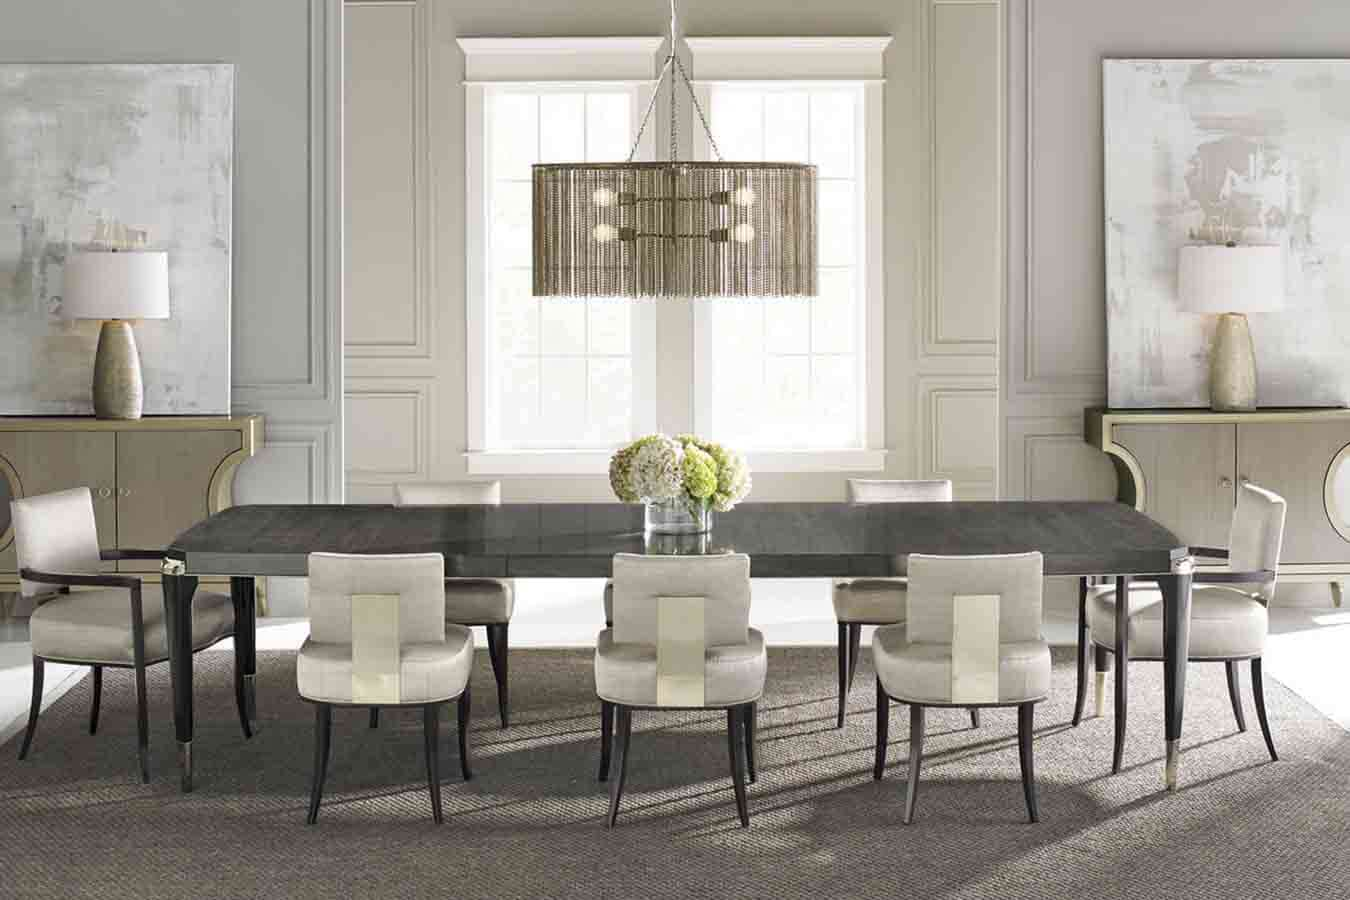 Dining Room | Contemporary Luxury Designer Modern Exclusive Handcrafted Furniture | Sandton Johannesburg